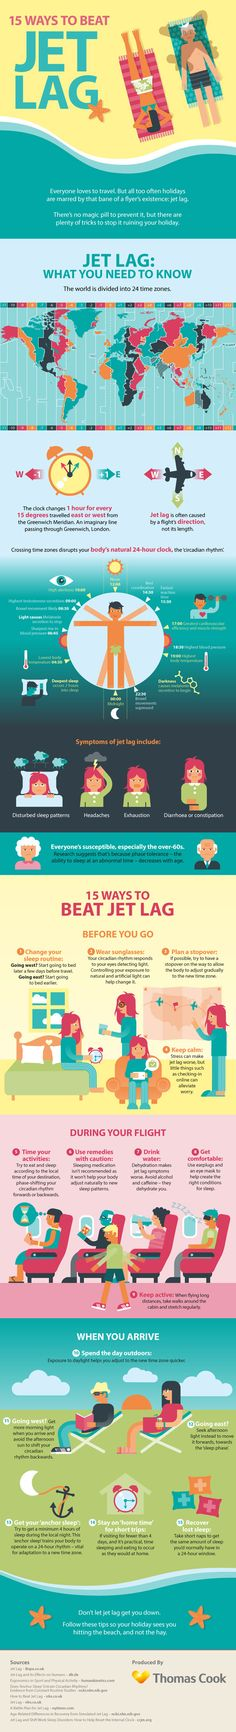 How To Avoid Jet Lag